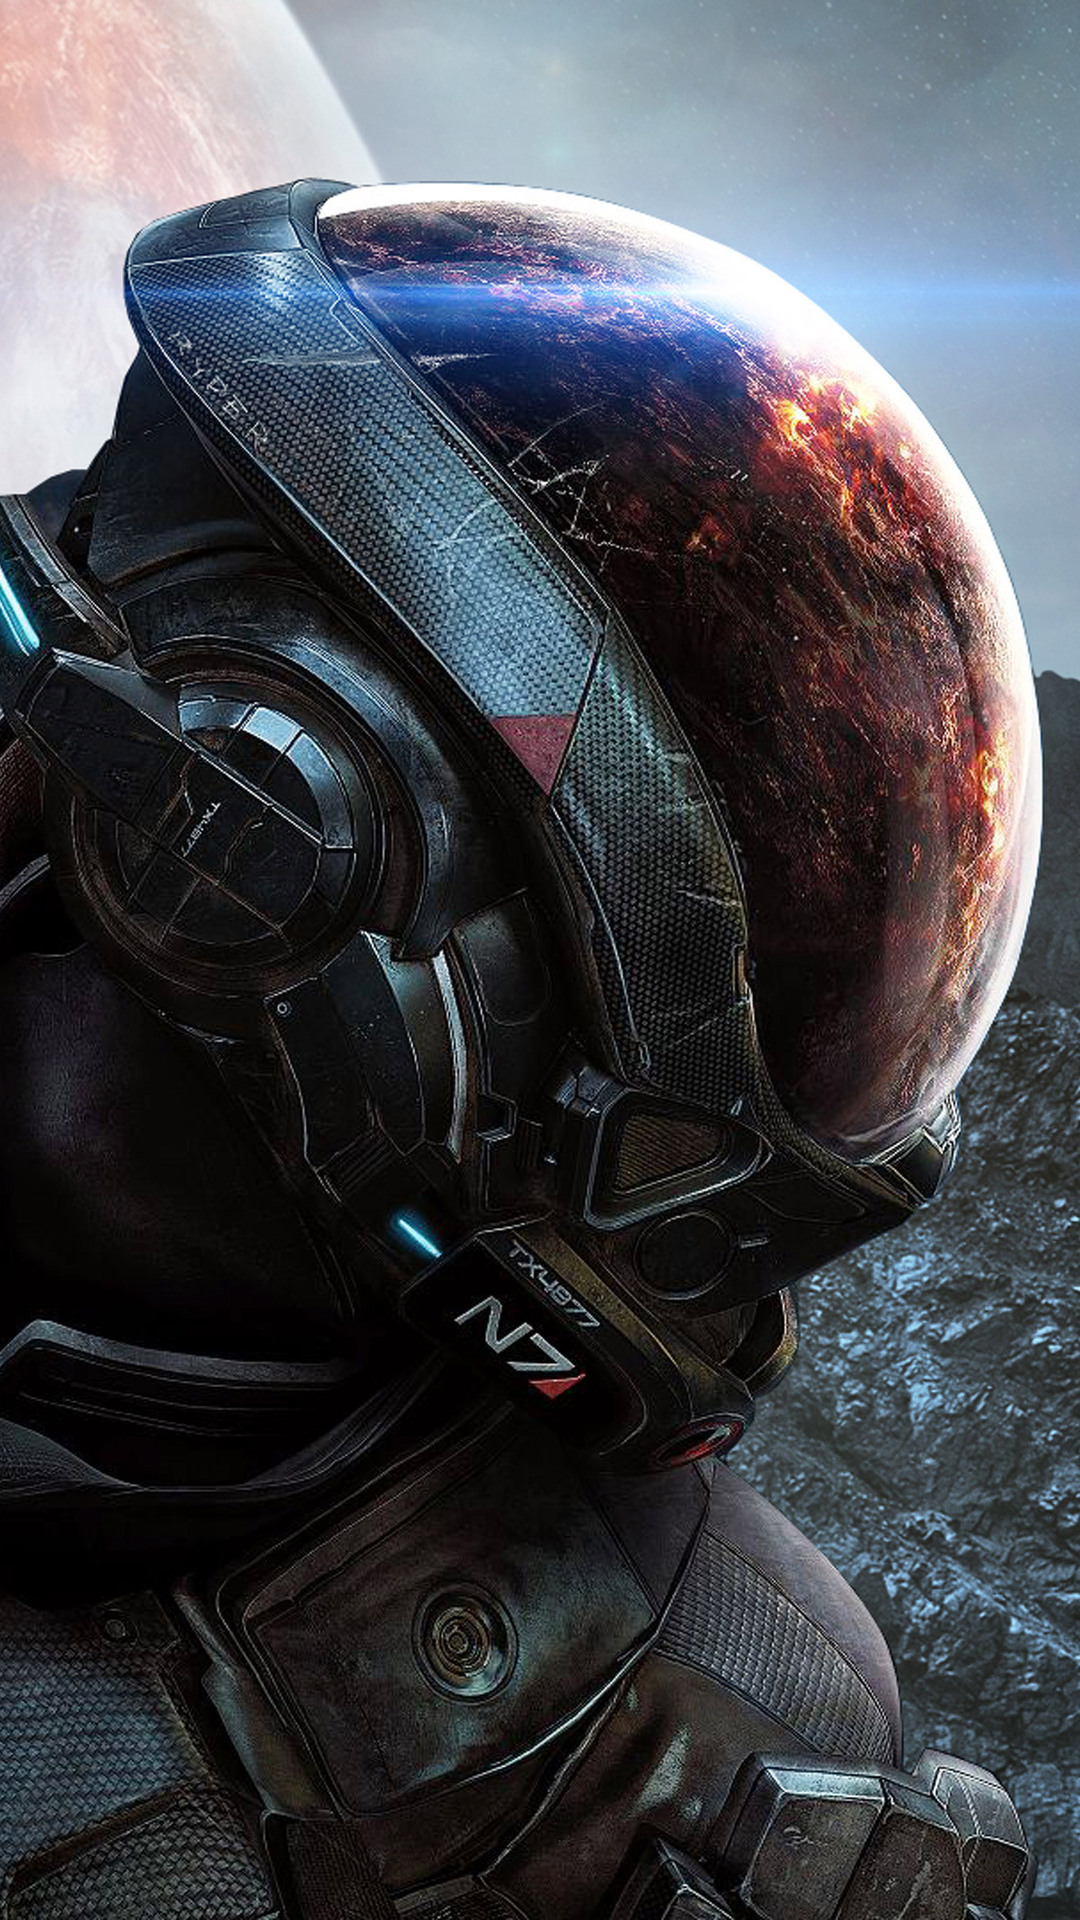 1080x1920 Mass Effect Andromeda Game 4k Iphone 7,6s,6 Plus ...